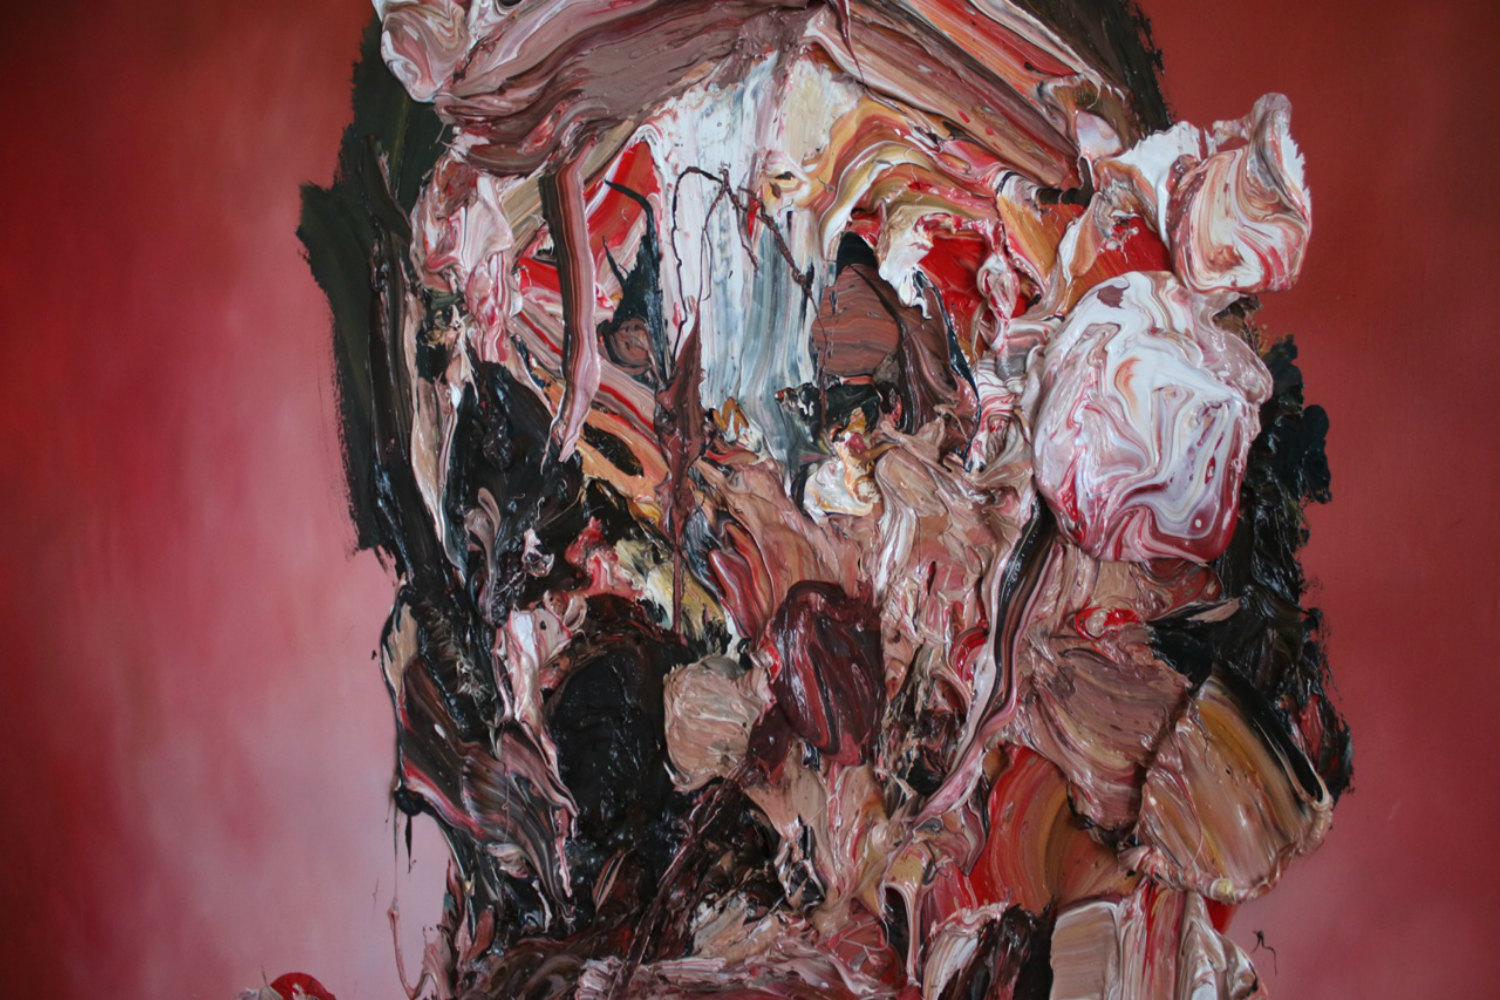 antony micallef painting english london self portrait abstract face